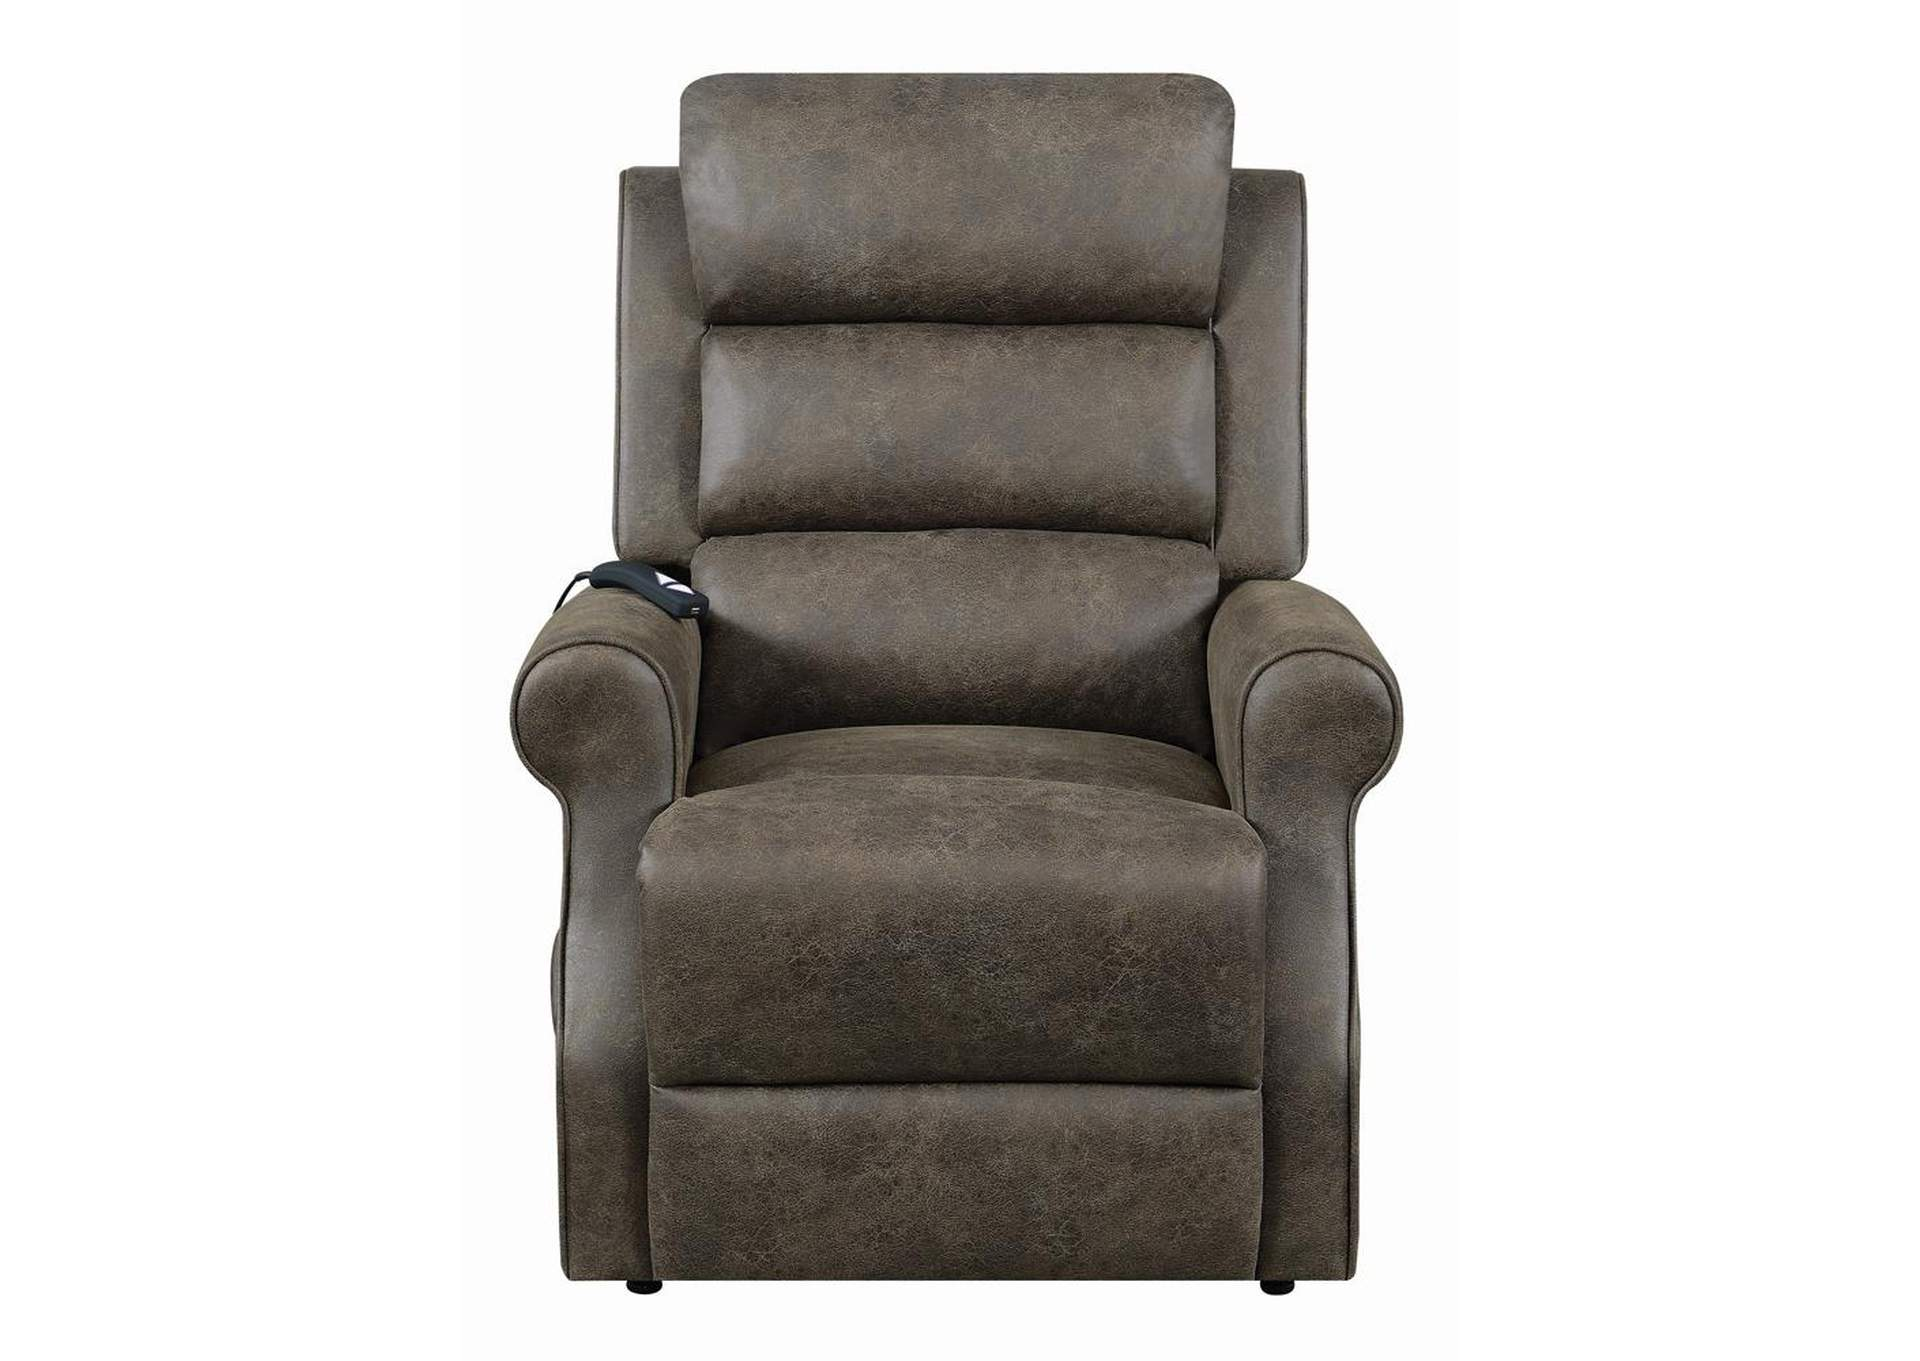 Taupe Casual Brown Power Lift Recliner,Coaster Furniture